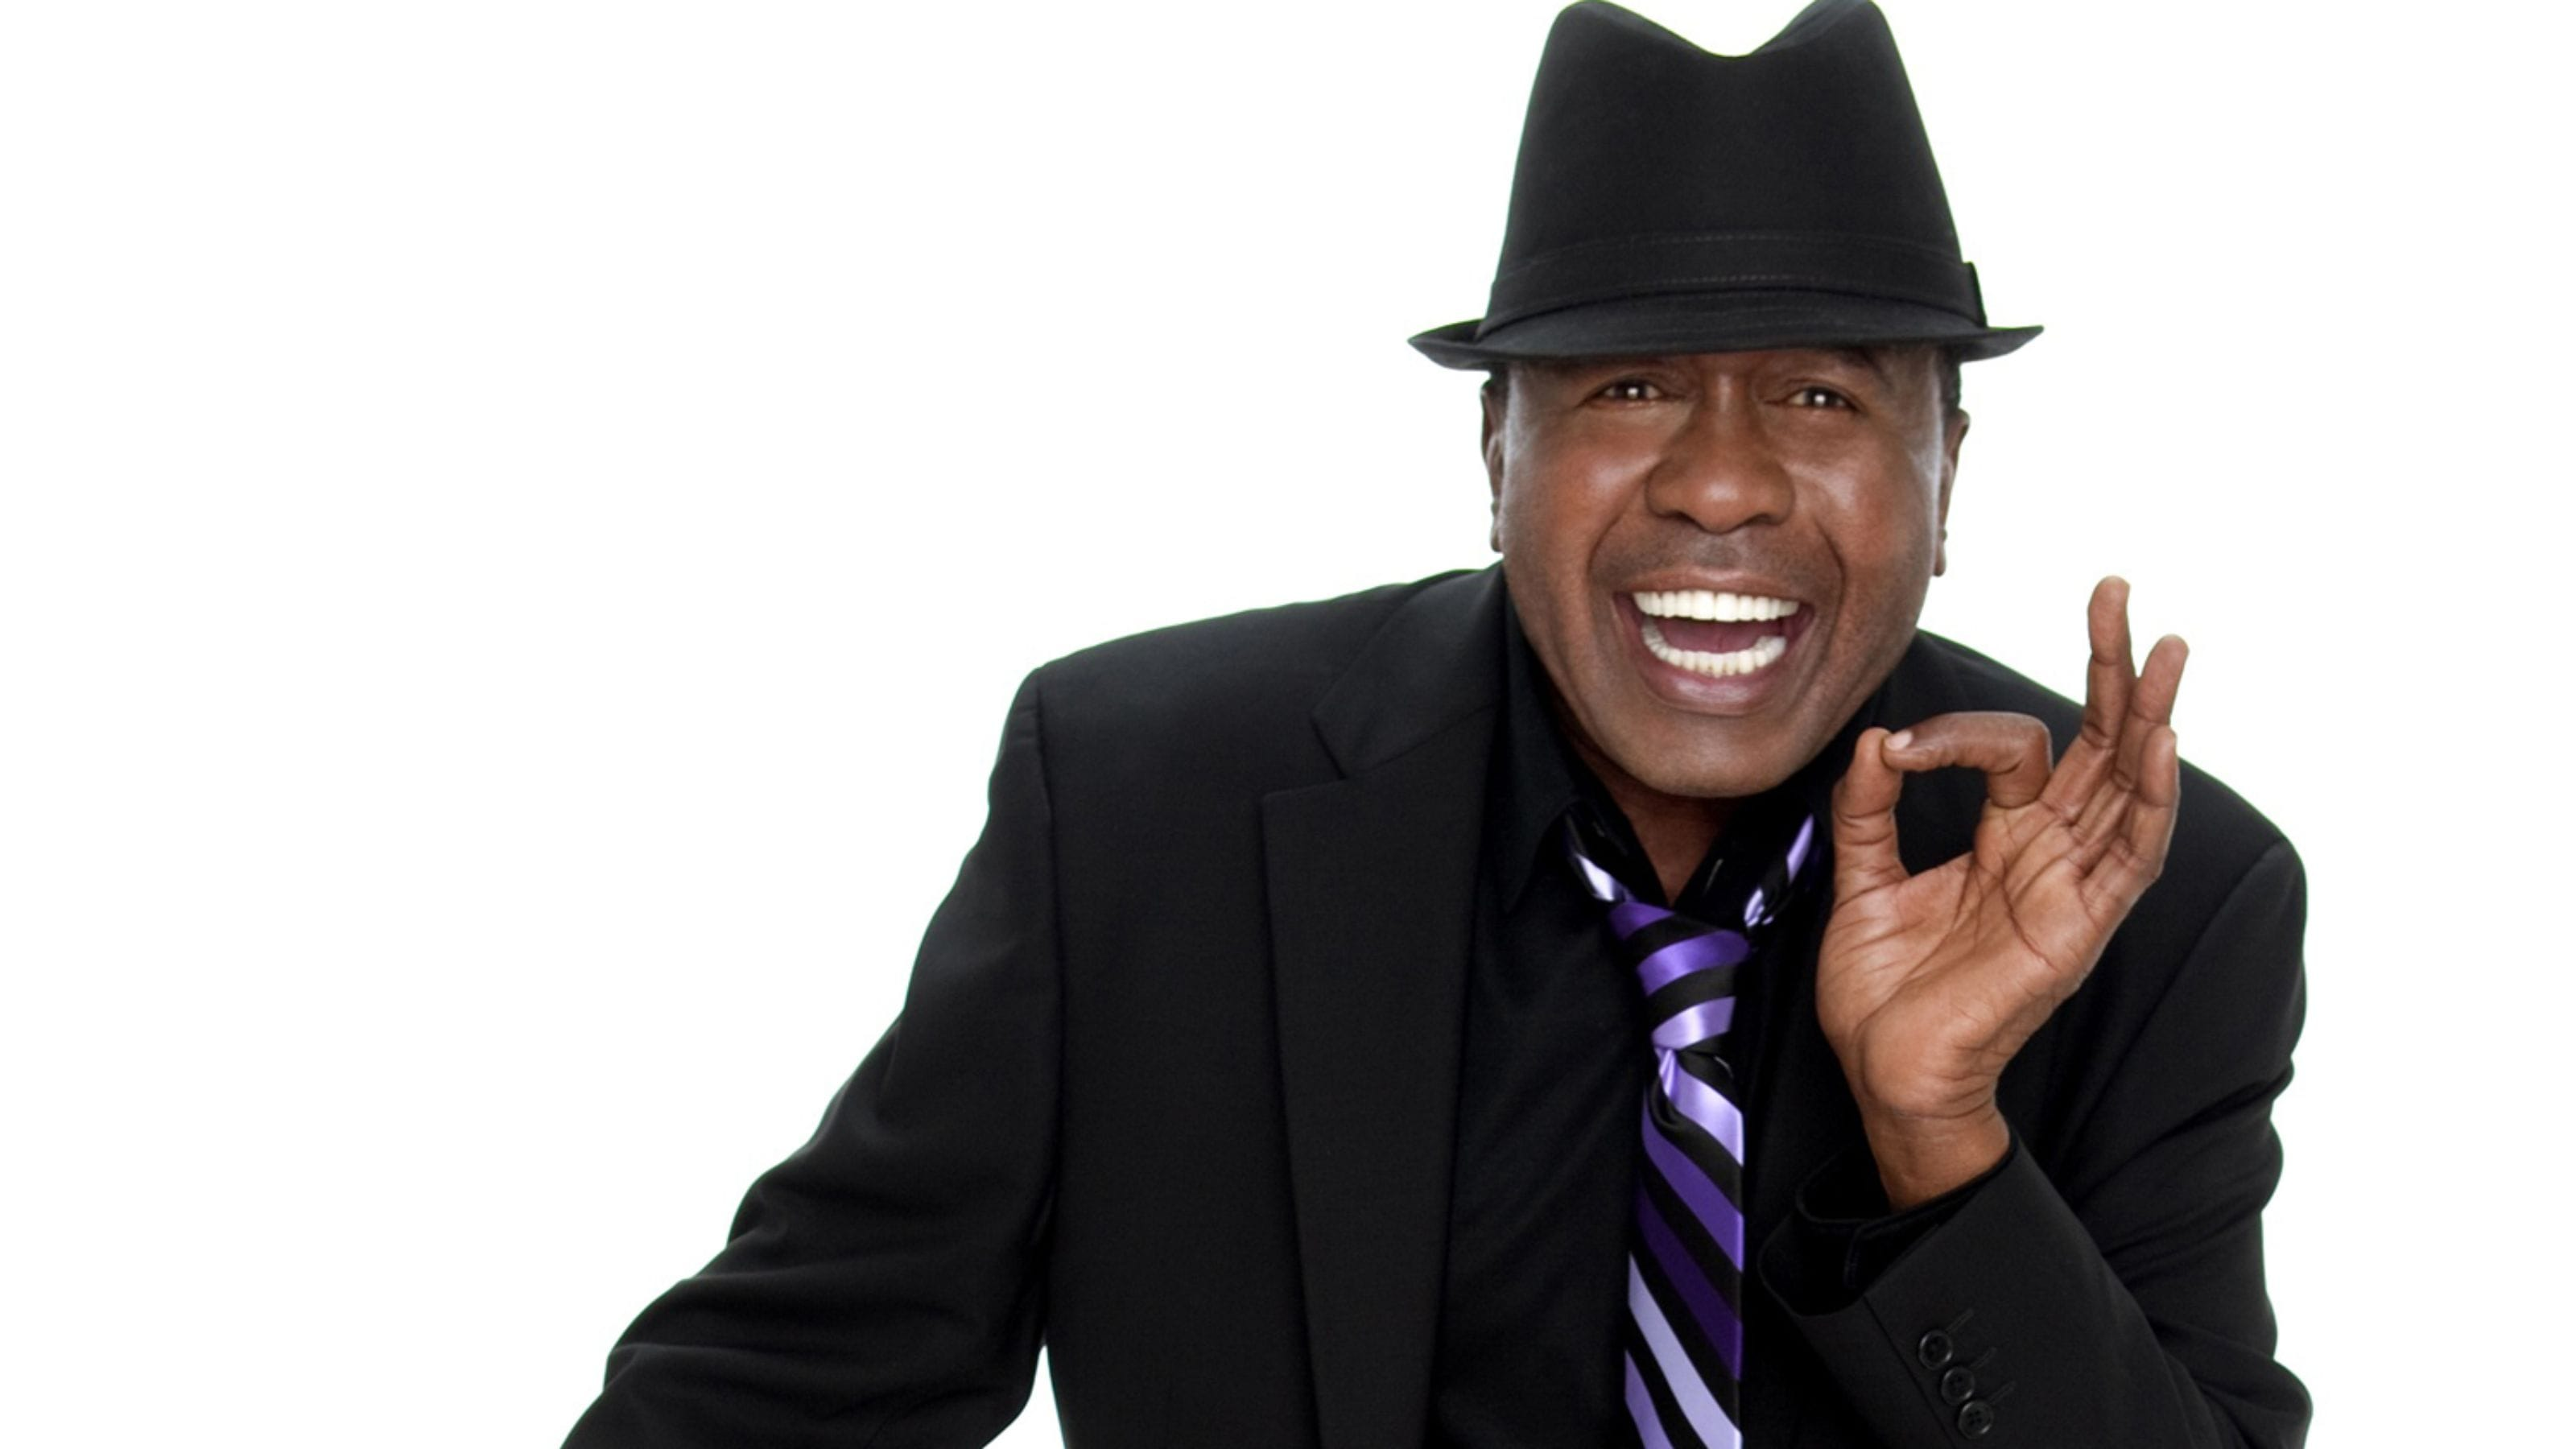 Ben Vereen Wallpapers